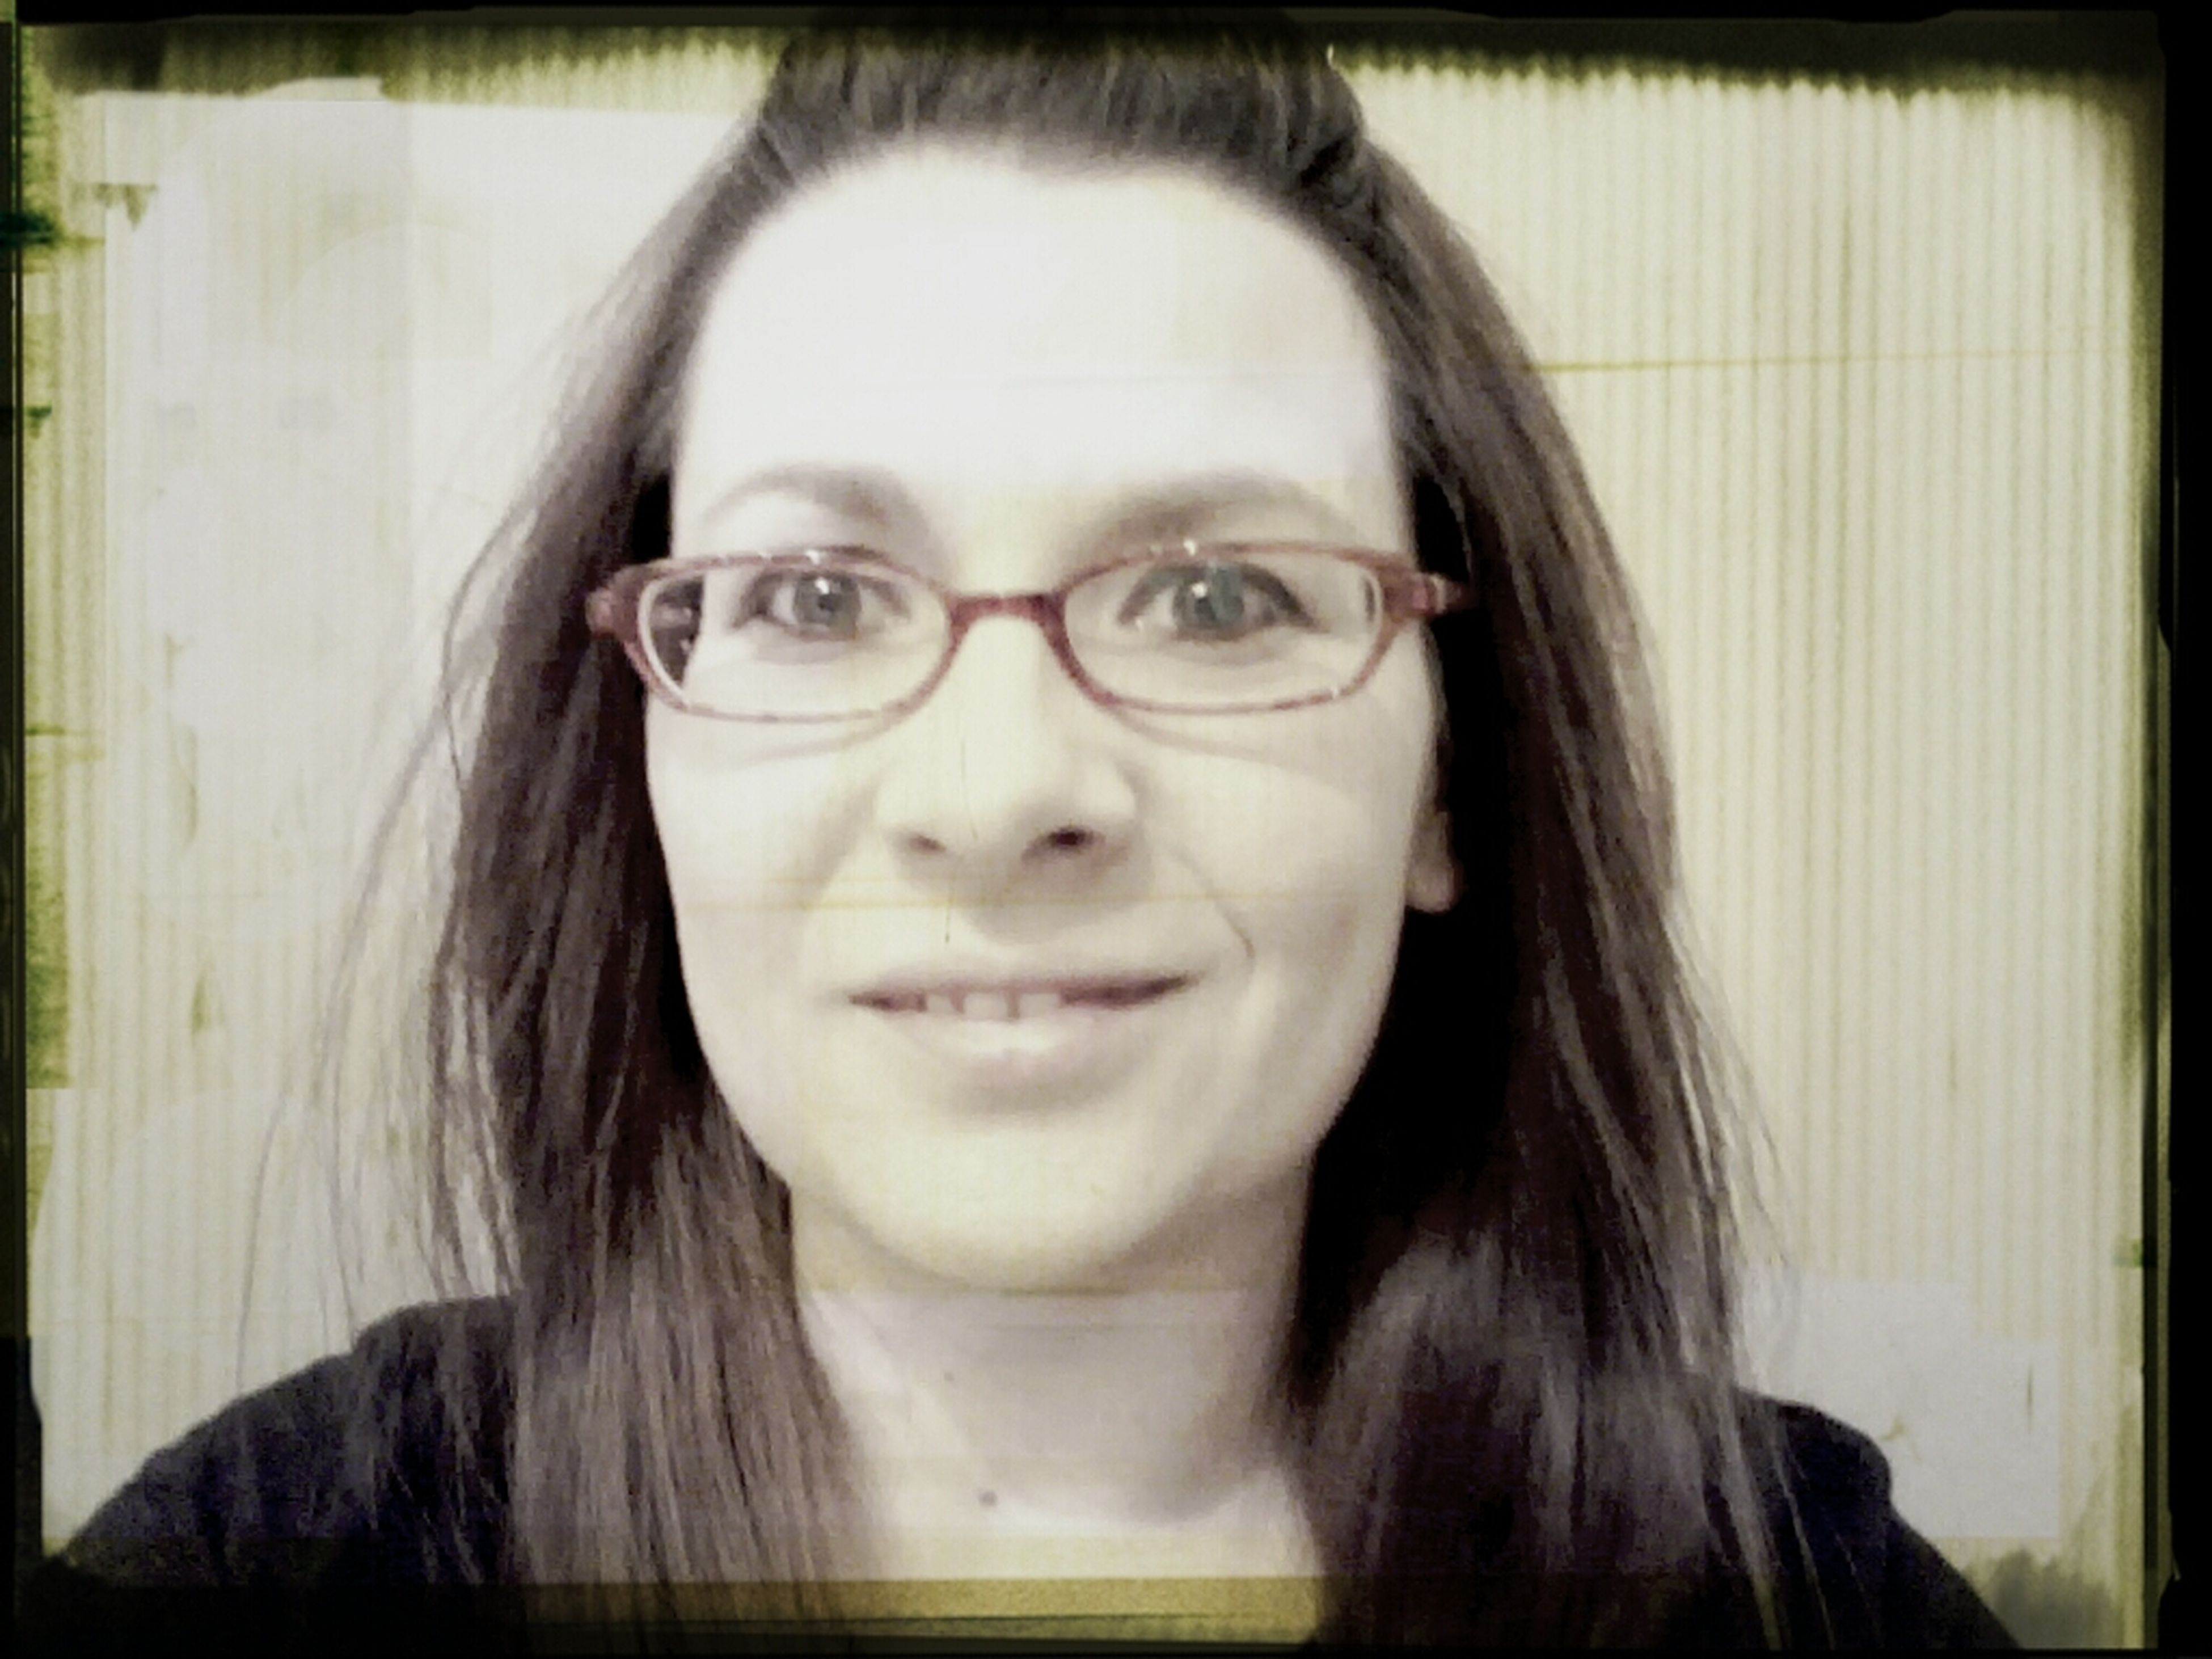 looking at camera, portrait, young adult, person, transfer print, headshot, lifestyles, front view, young women, leisure activity, auto post production filter, indoors, head and shoulders, sunglasses, close-up, smiling, mid adult